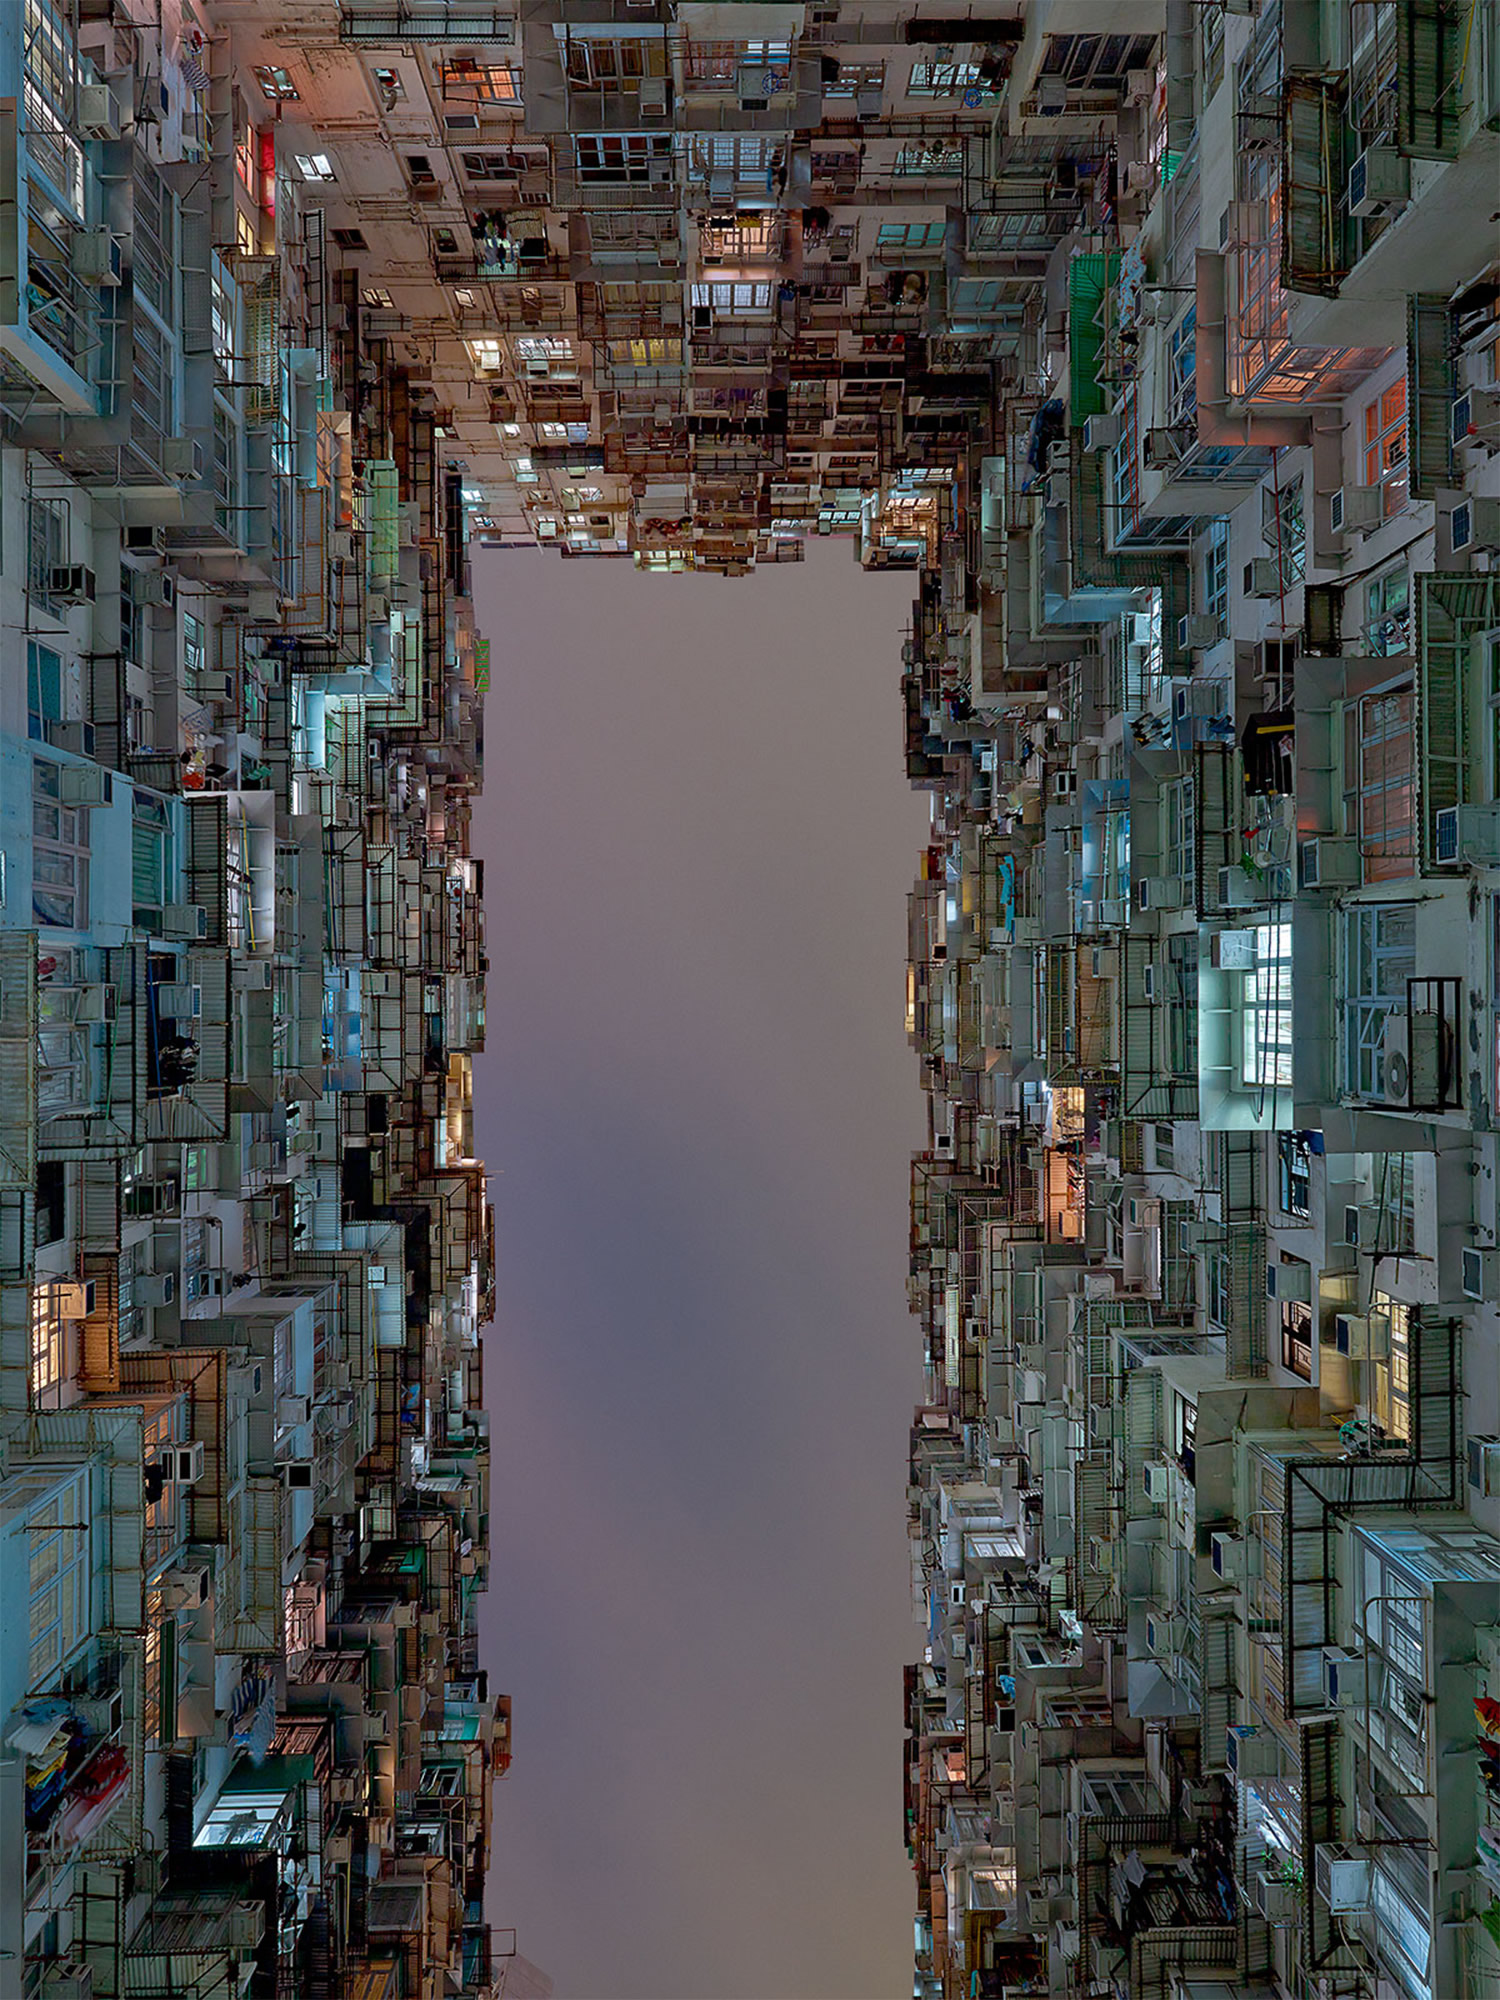 hans wilschut disorienting architectural photograph vertical rectangle